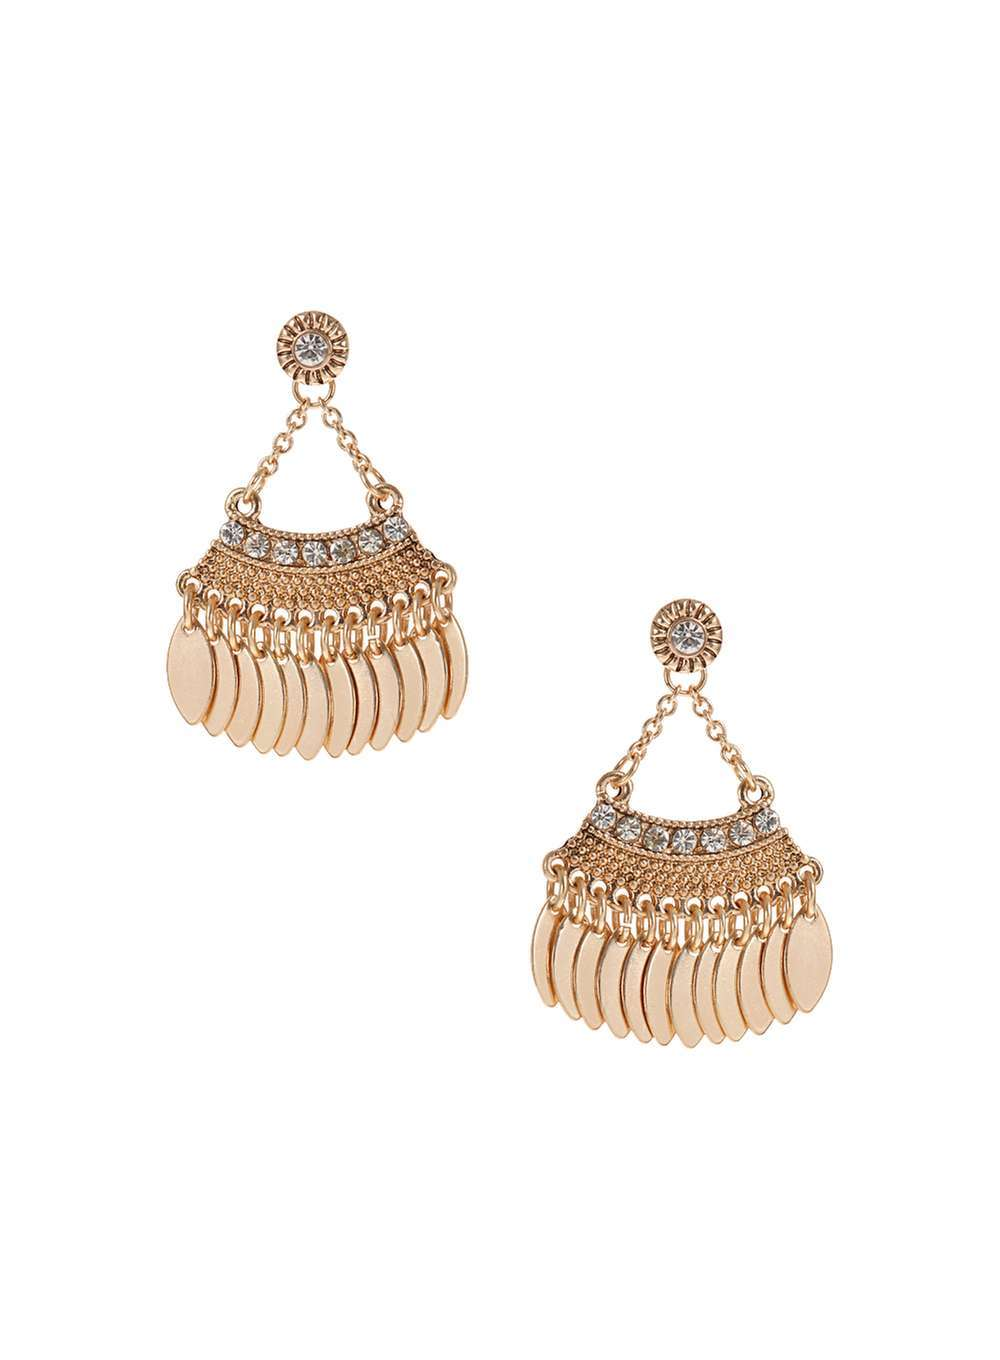 Womens Ethnic Drop Earrings Clear - predominant colour: gold; occasions: evening, occasion; style: chandelier; length: mid; size: large/oversized; material: chain/metal; fastening: pierced; finish: metallic; embellishment: crystals/glass; season: a/w 2016; wardrobe: event